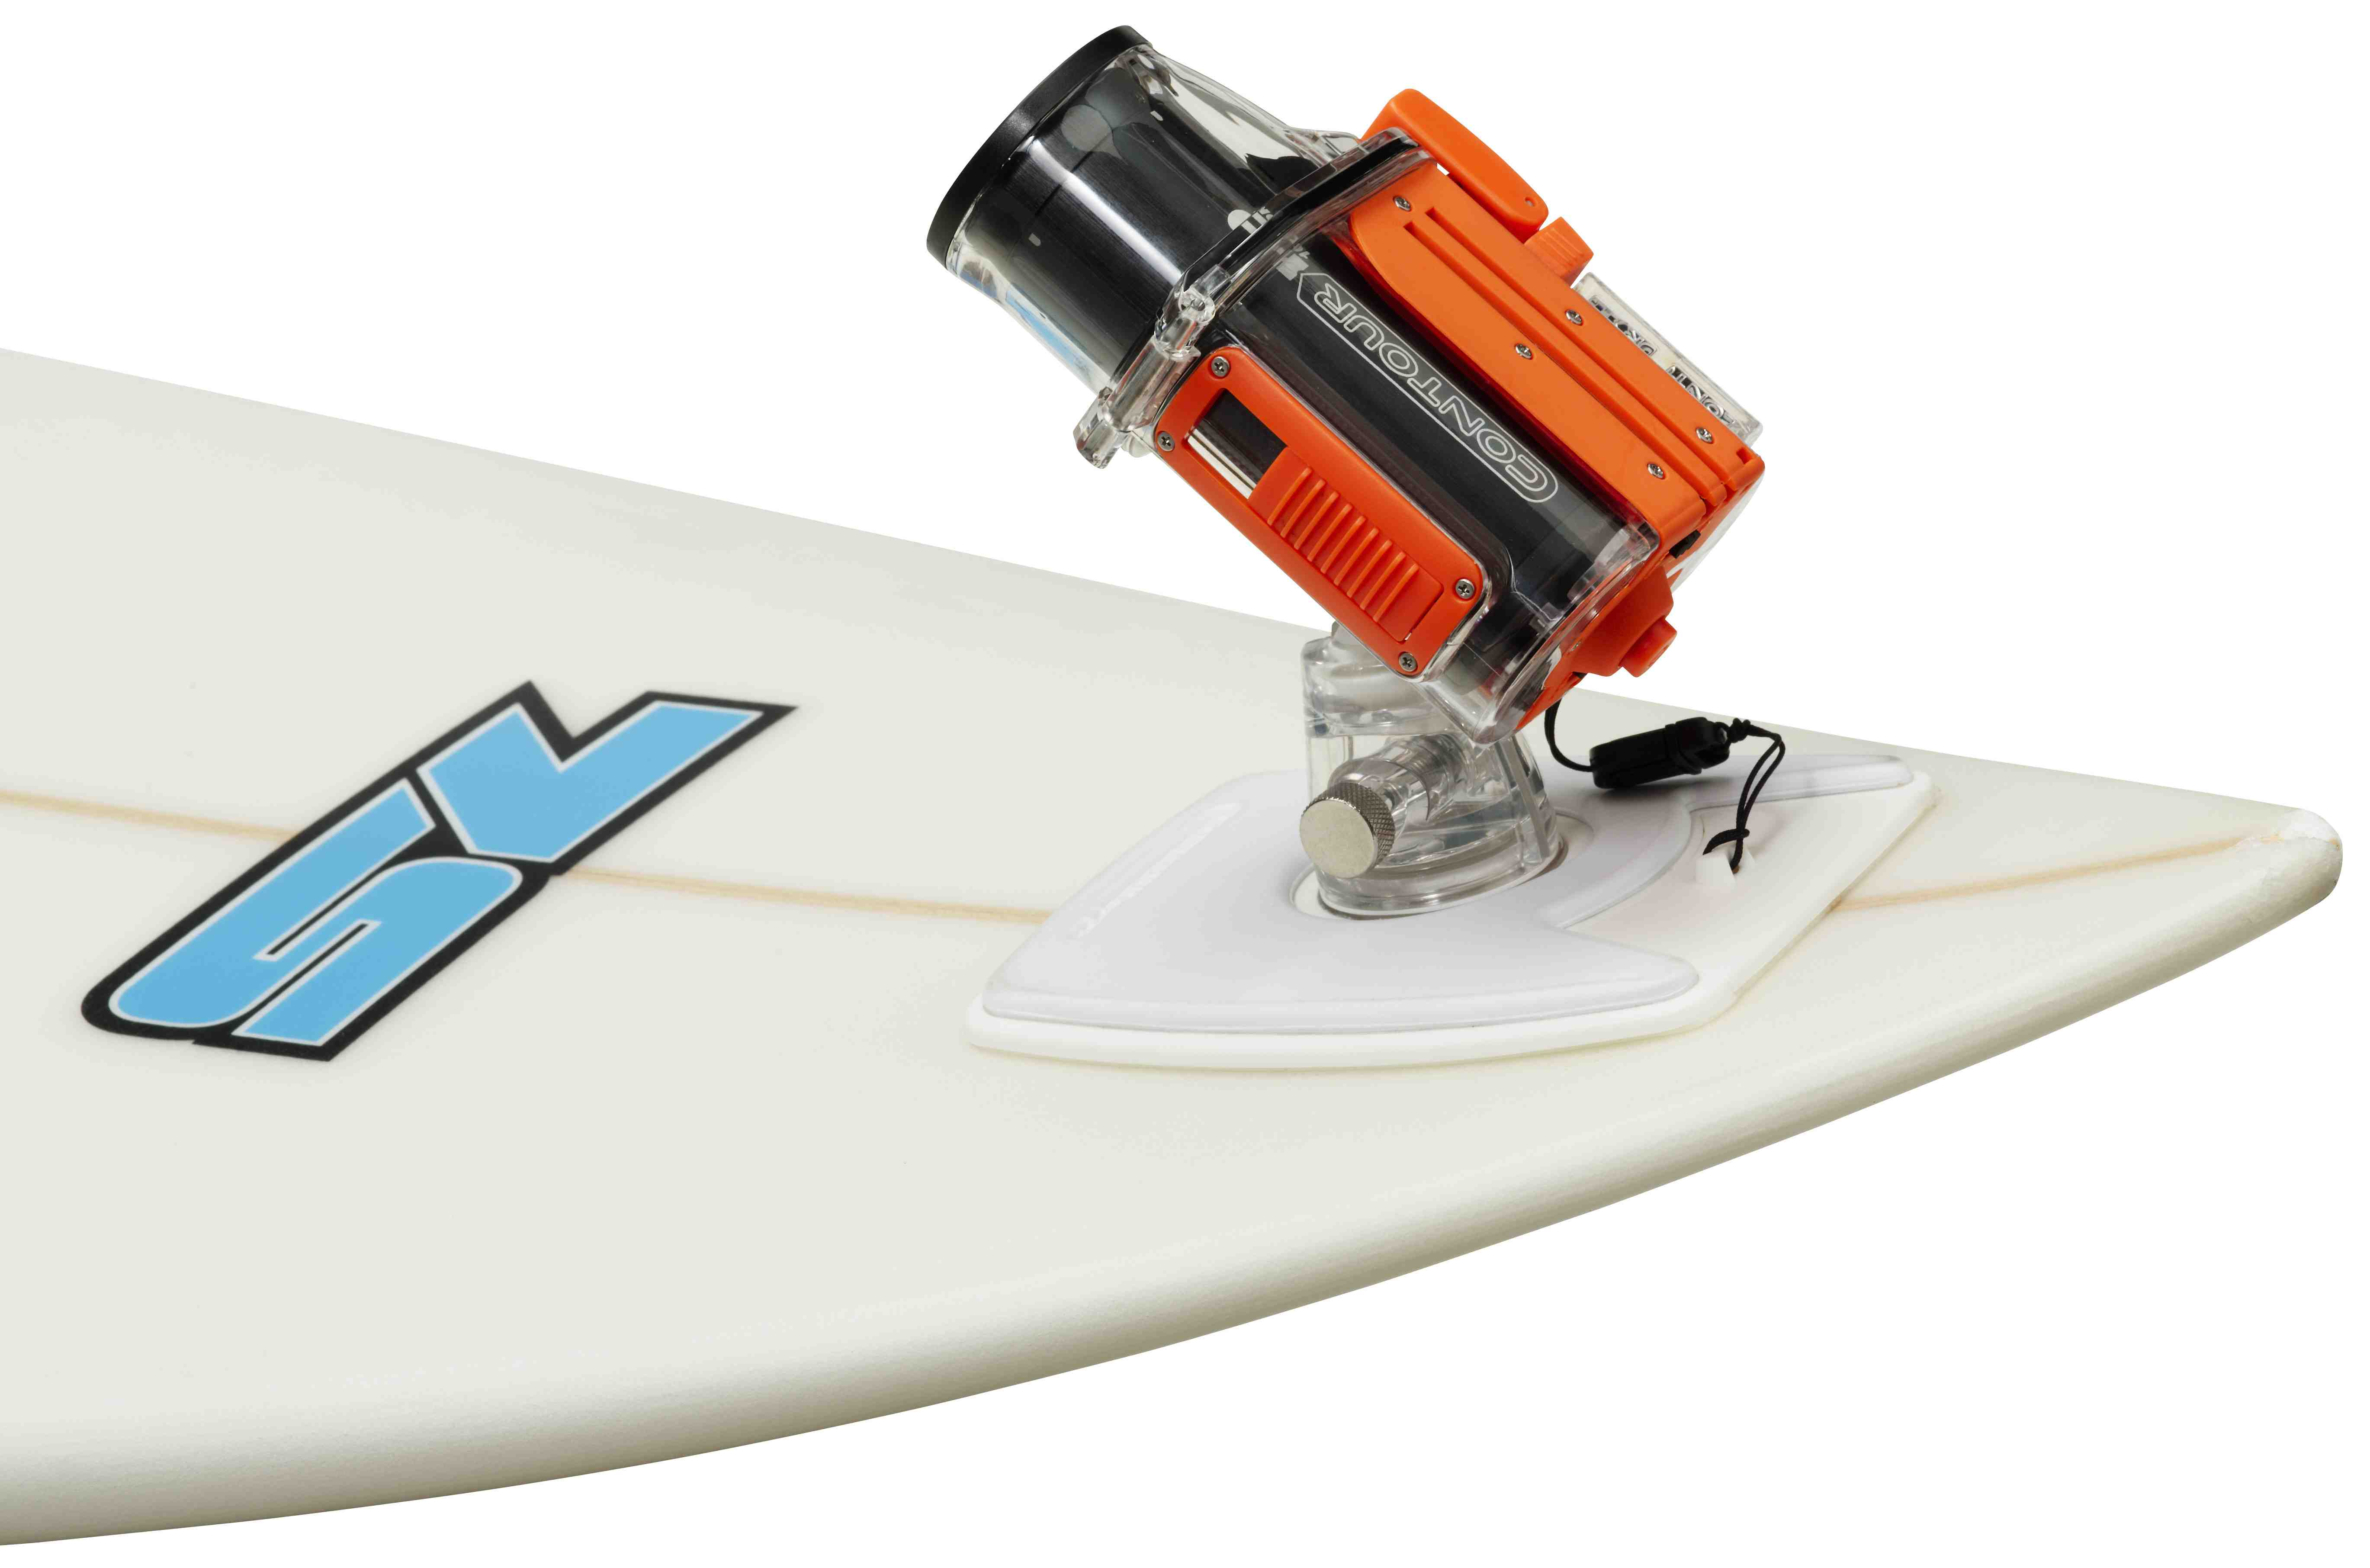 Contour Surf Wake Mount